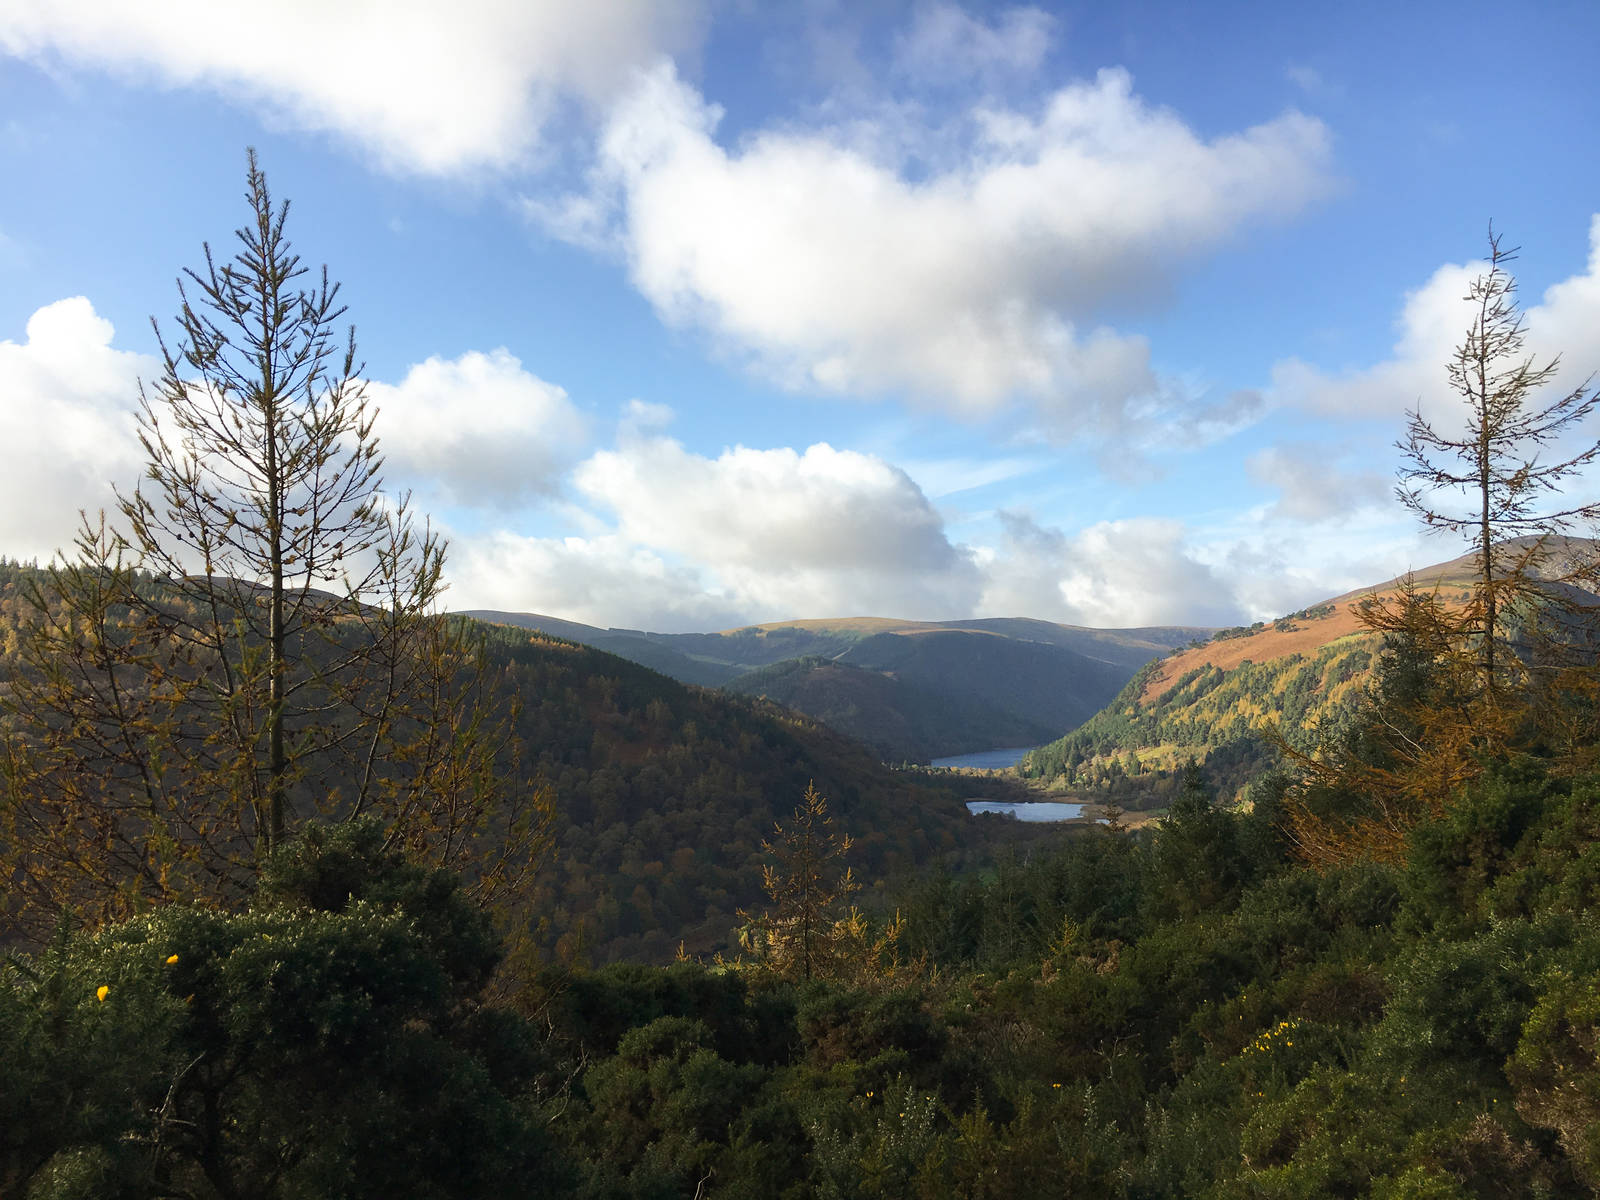 The Glendalough Valley